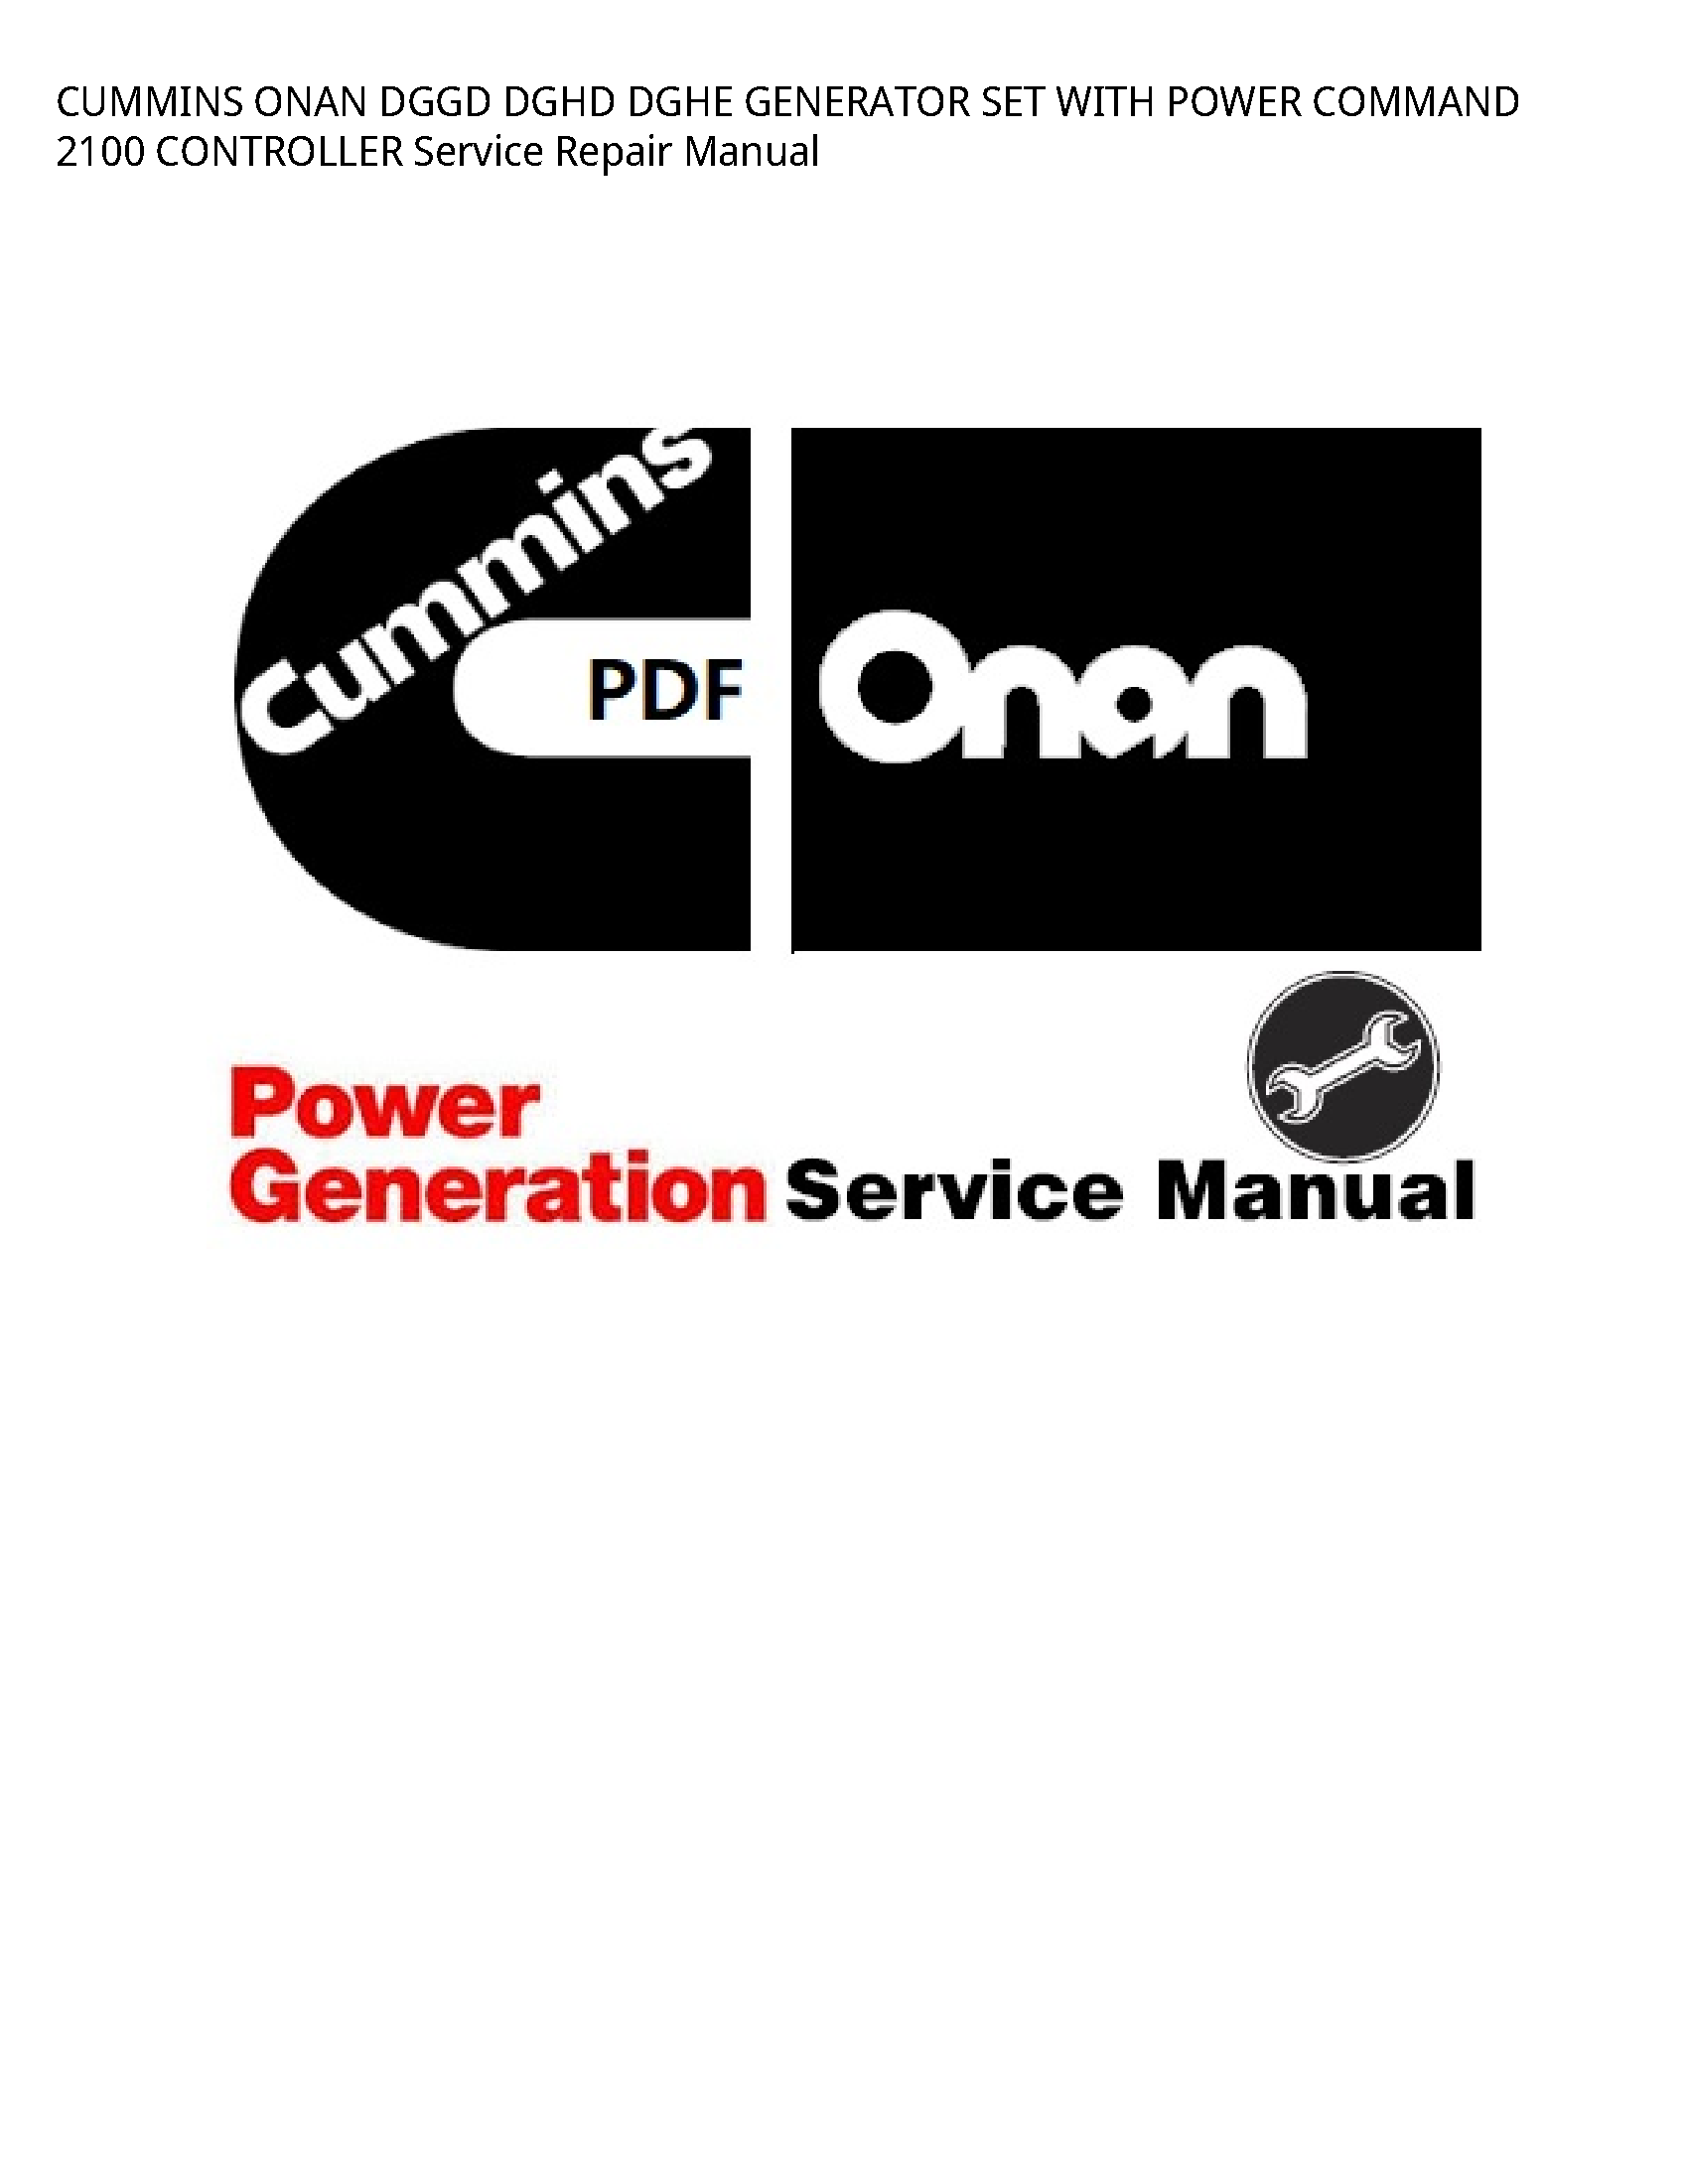 Onan 2100 DGGD DGHD DGHE GENERATOR SET WITH POWER COMMAND CONTROLLER manual